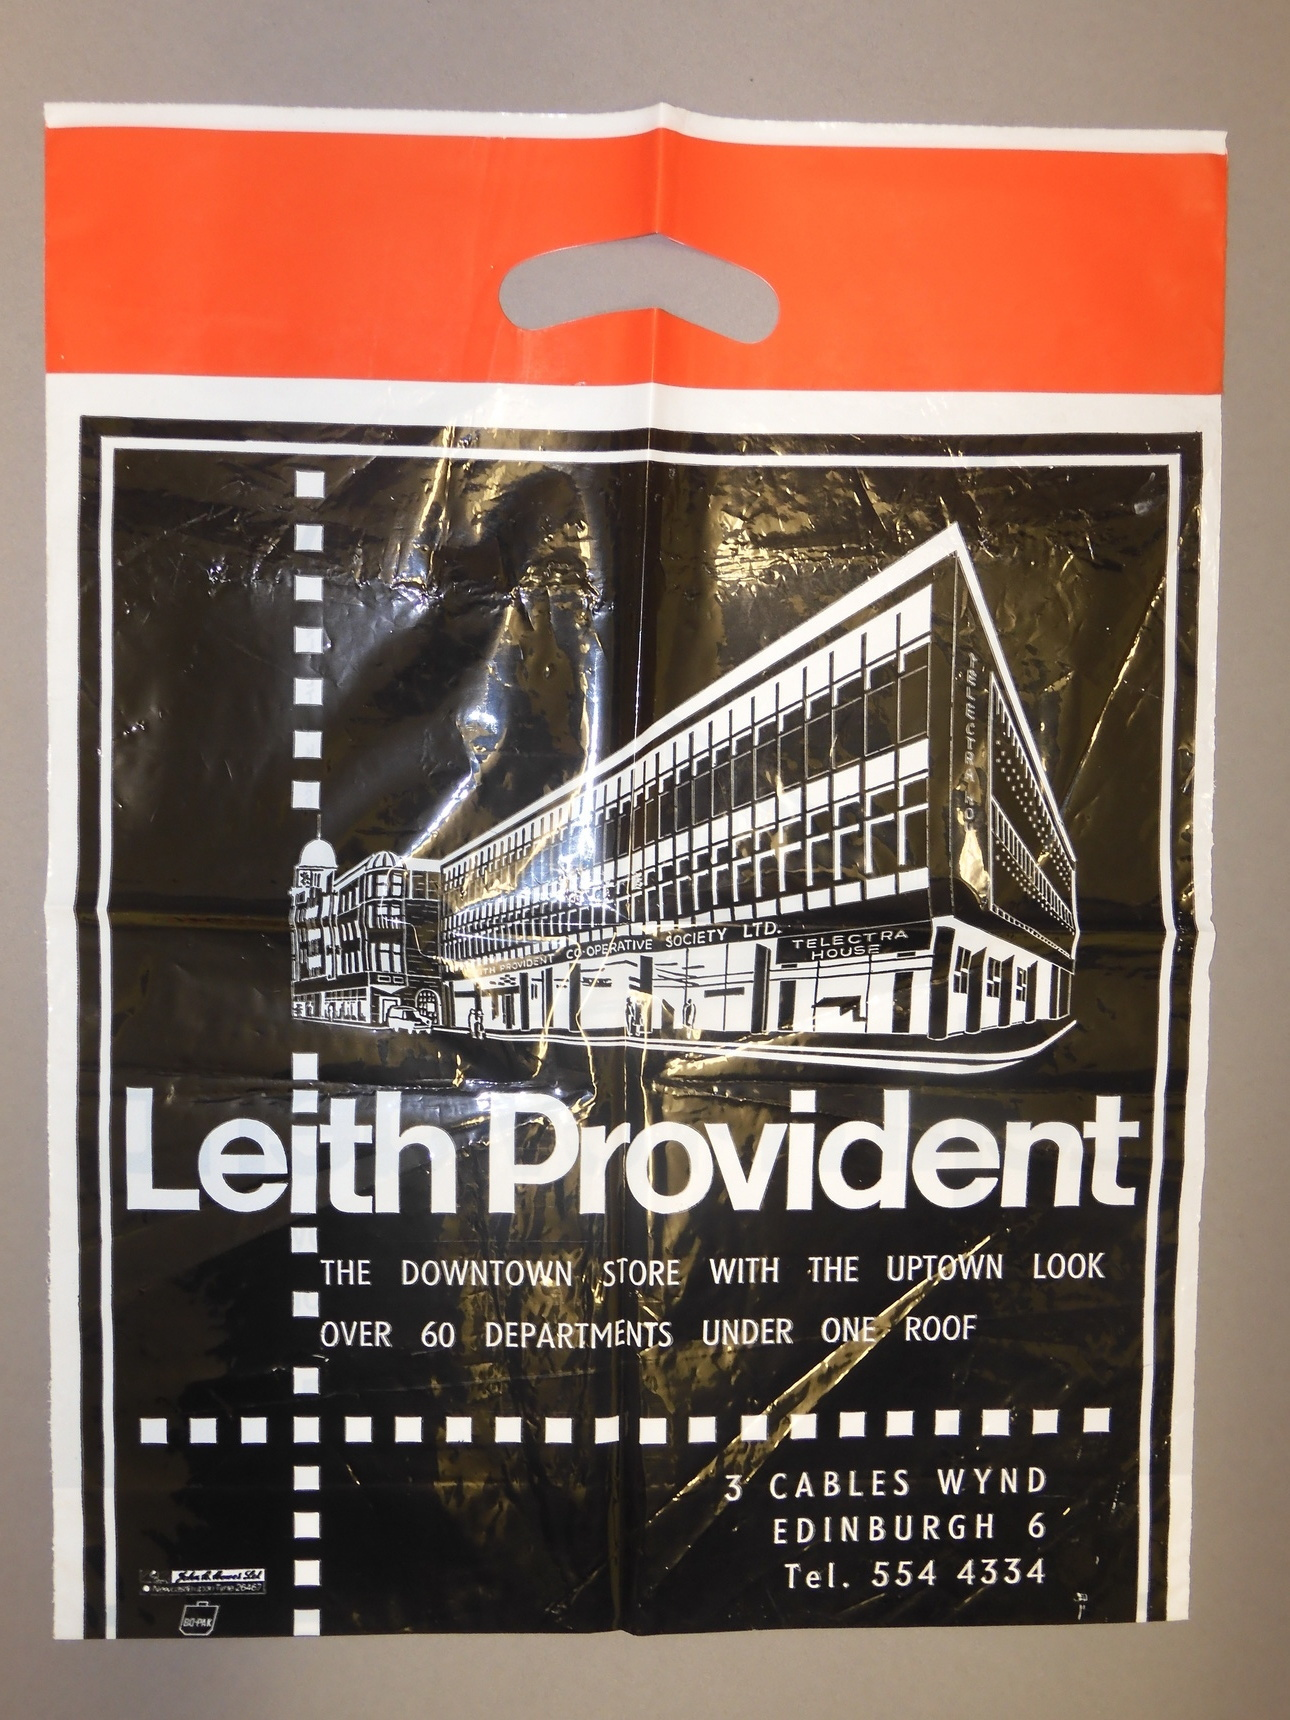 Leith Provident carrier bag